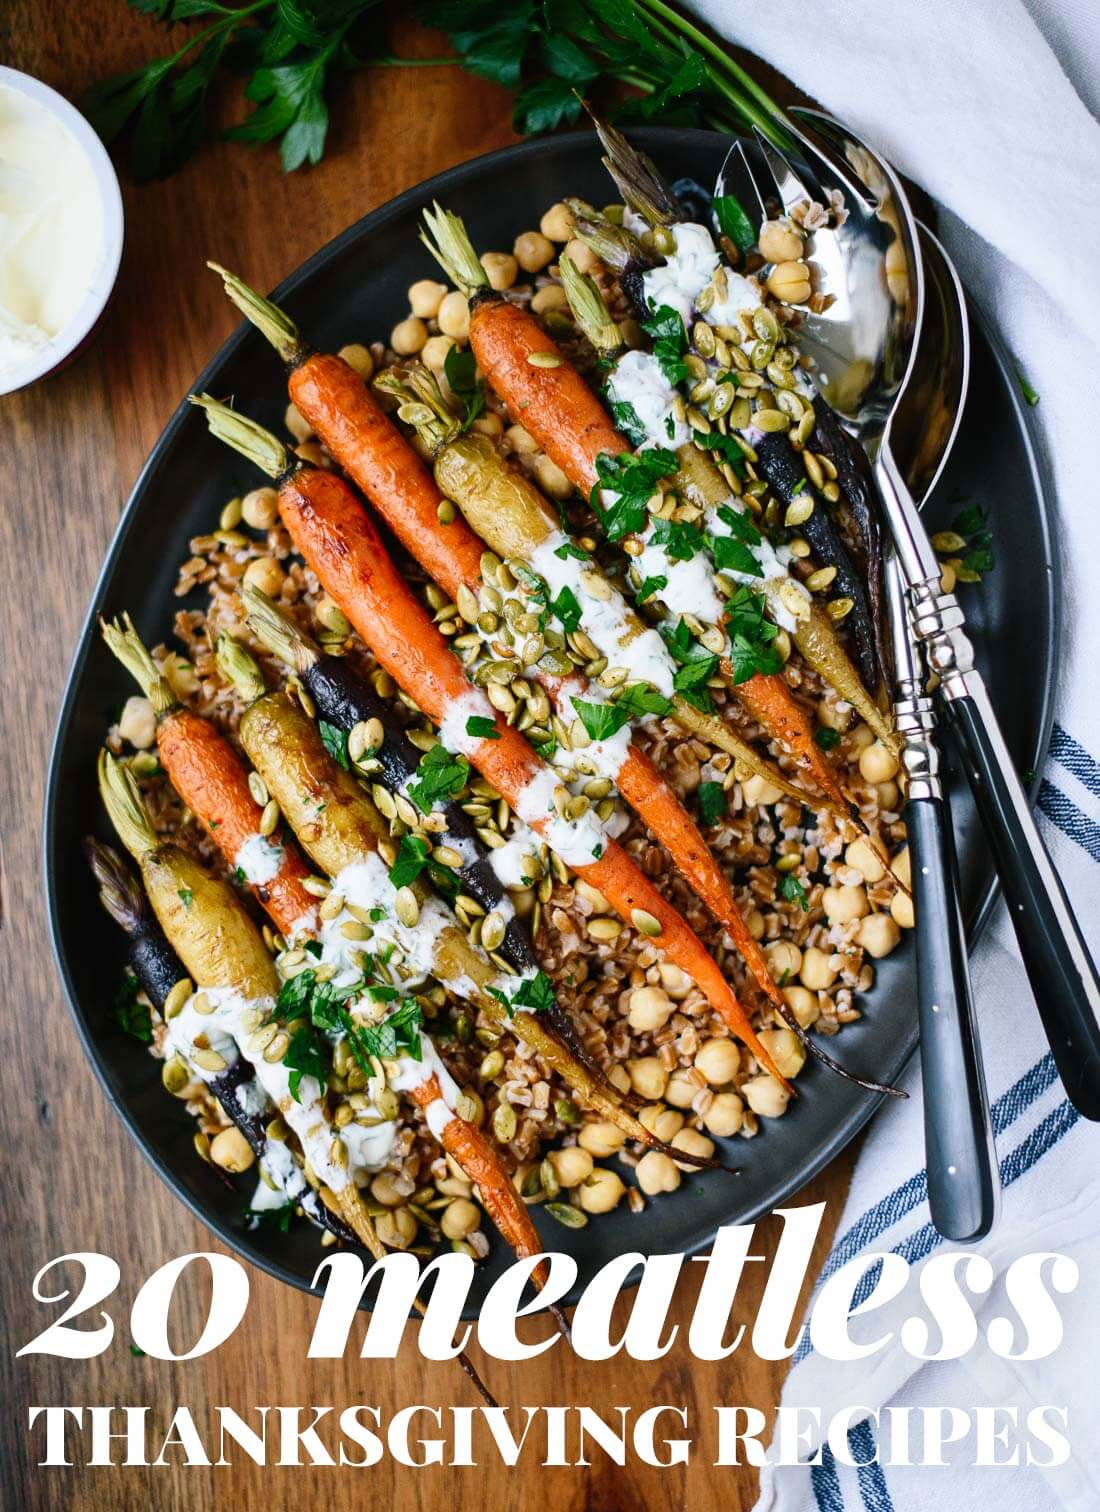 20 Vegetarian Thanksgiving Recipes - Cookie and Kate